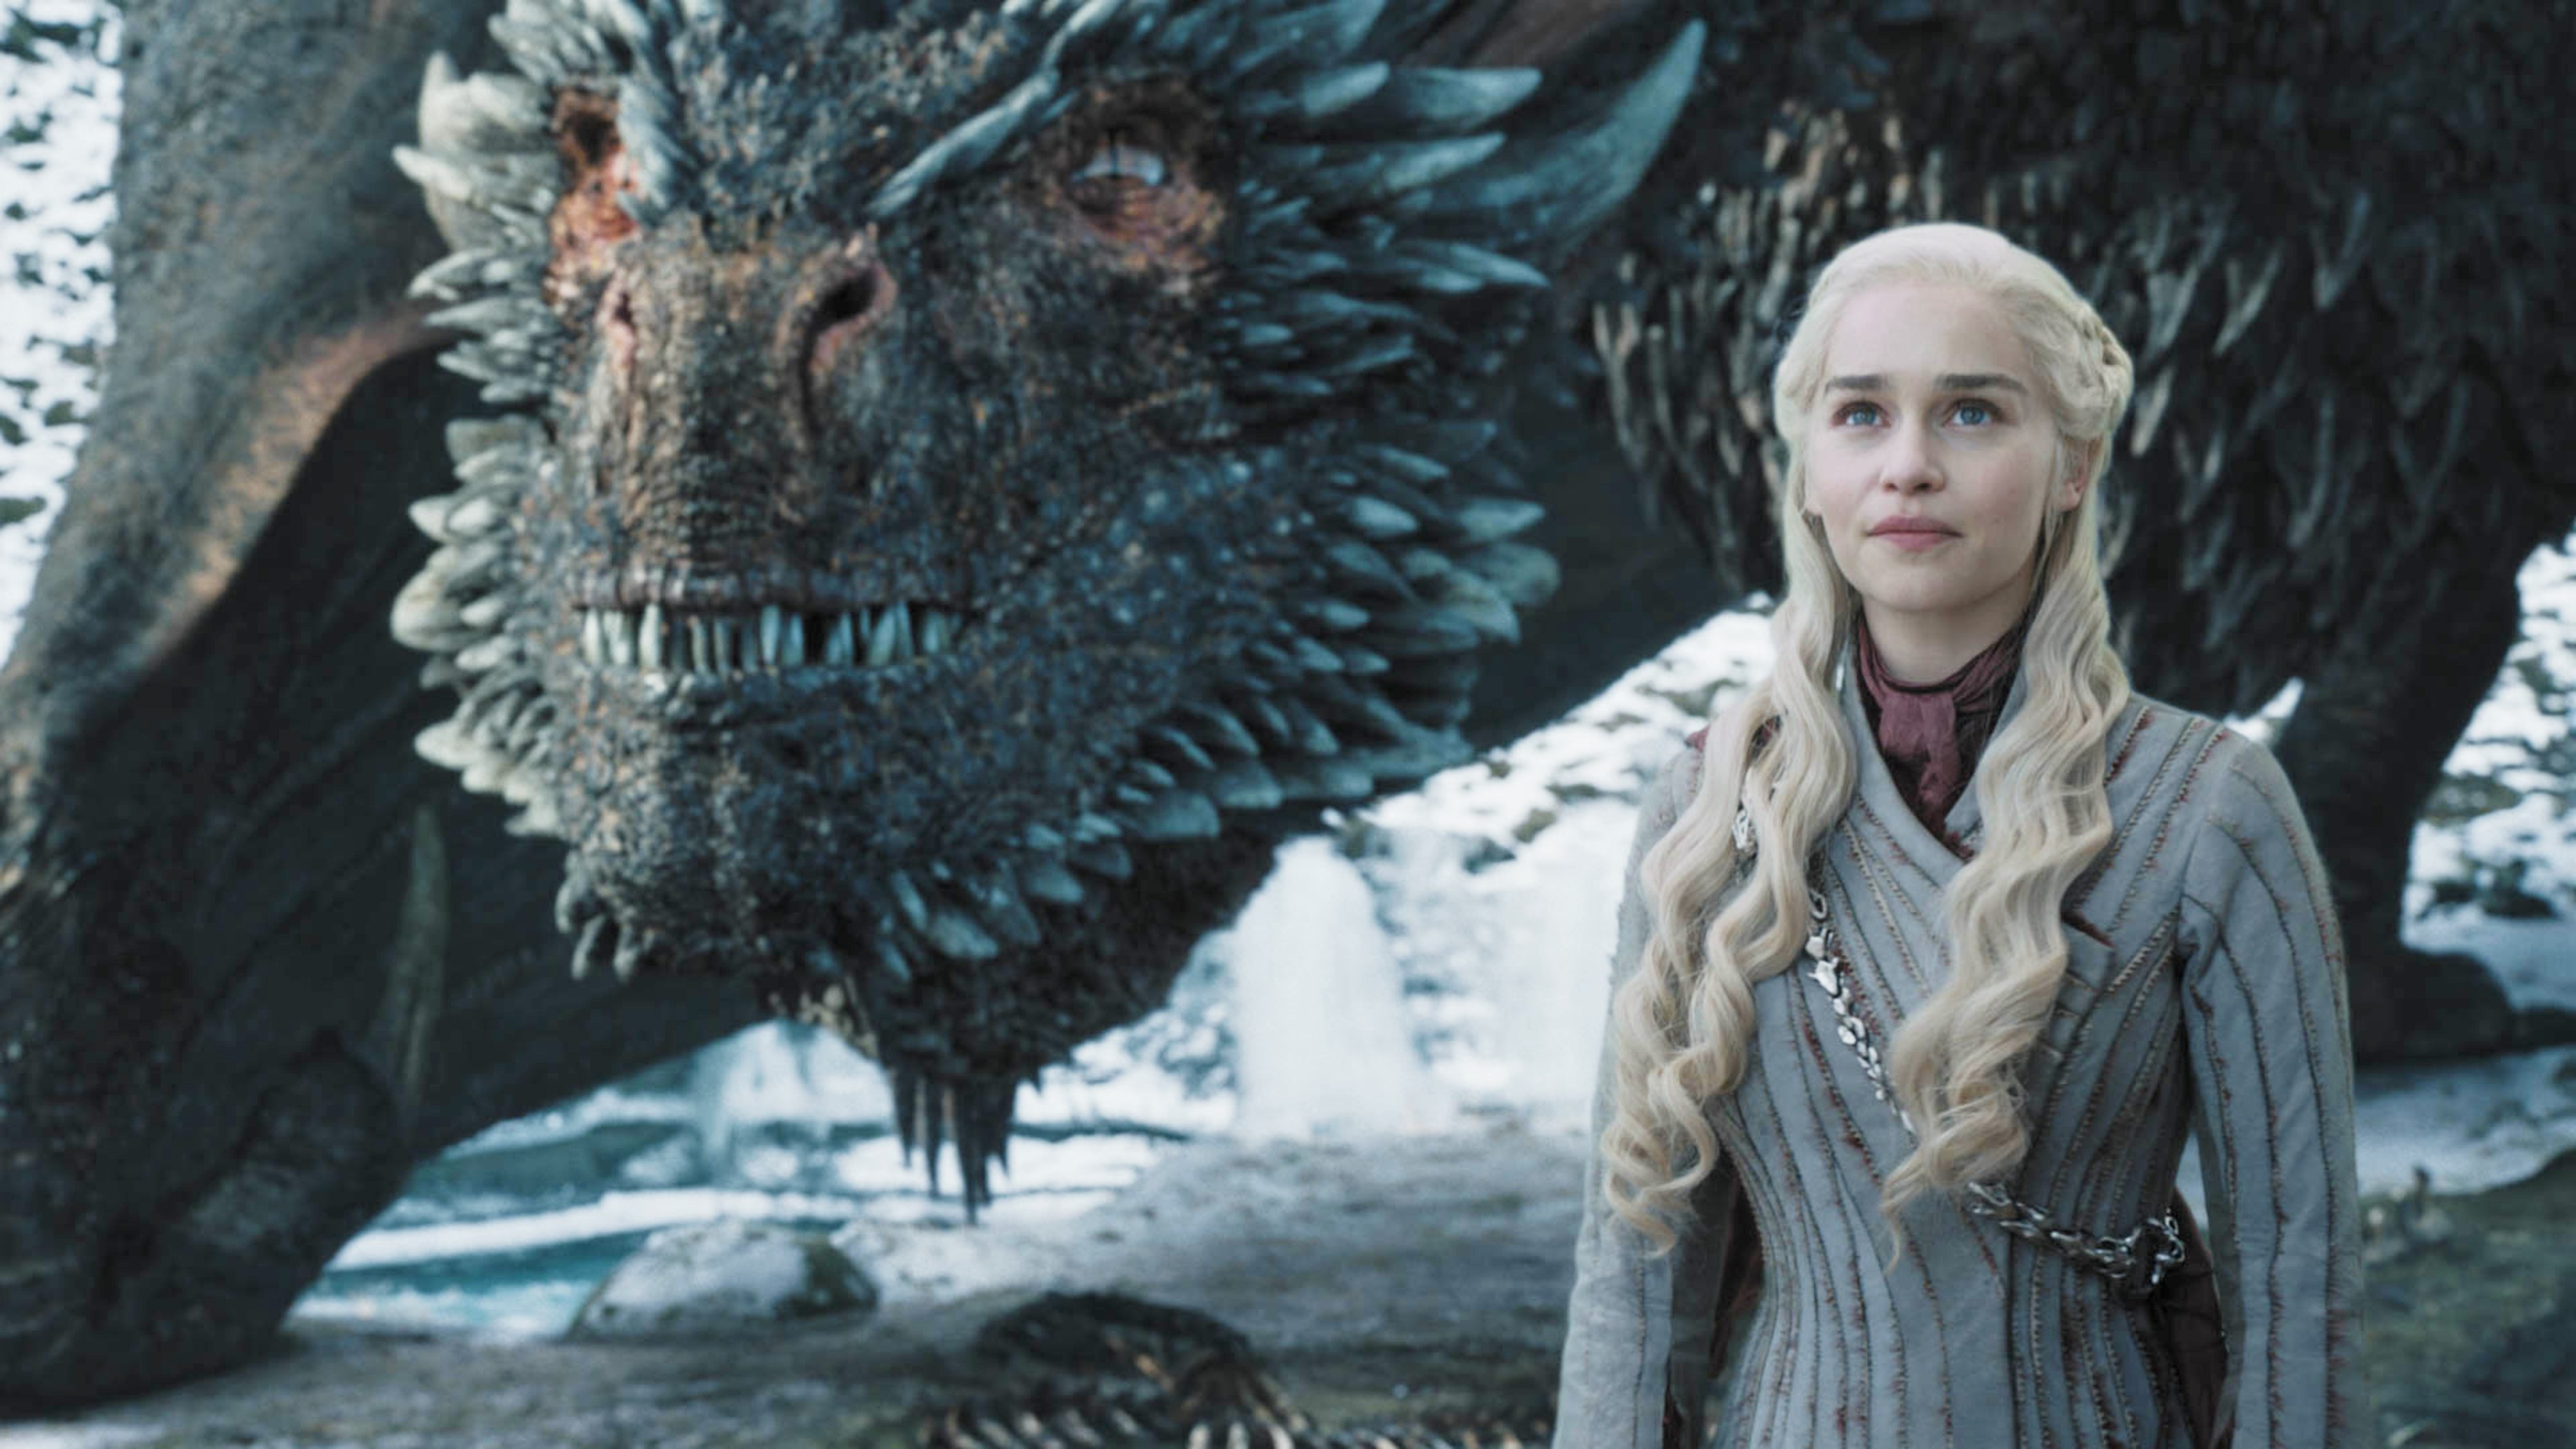 Drogon looks healthy and Dany is happy. Good news, for once? Photo courtesy of HBO.